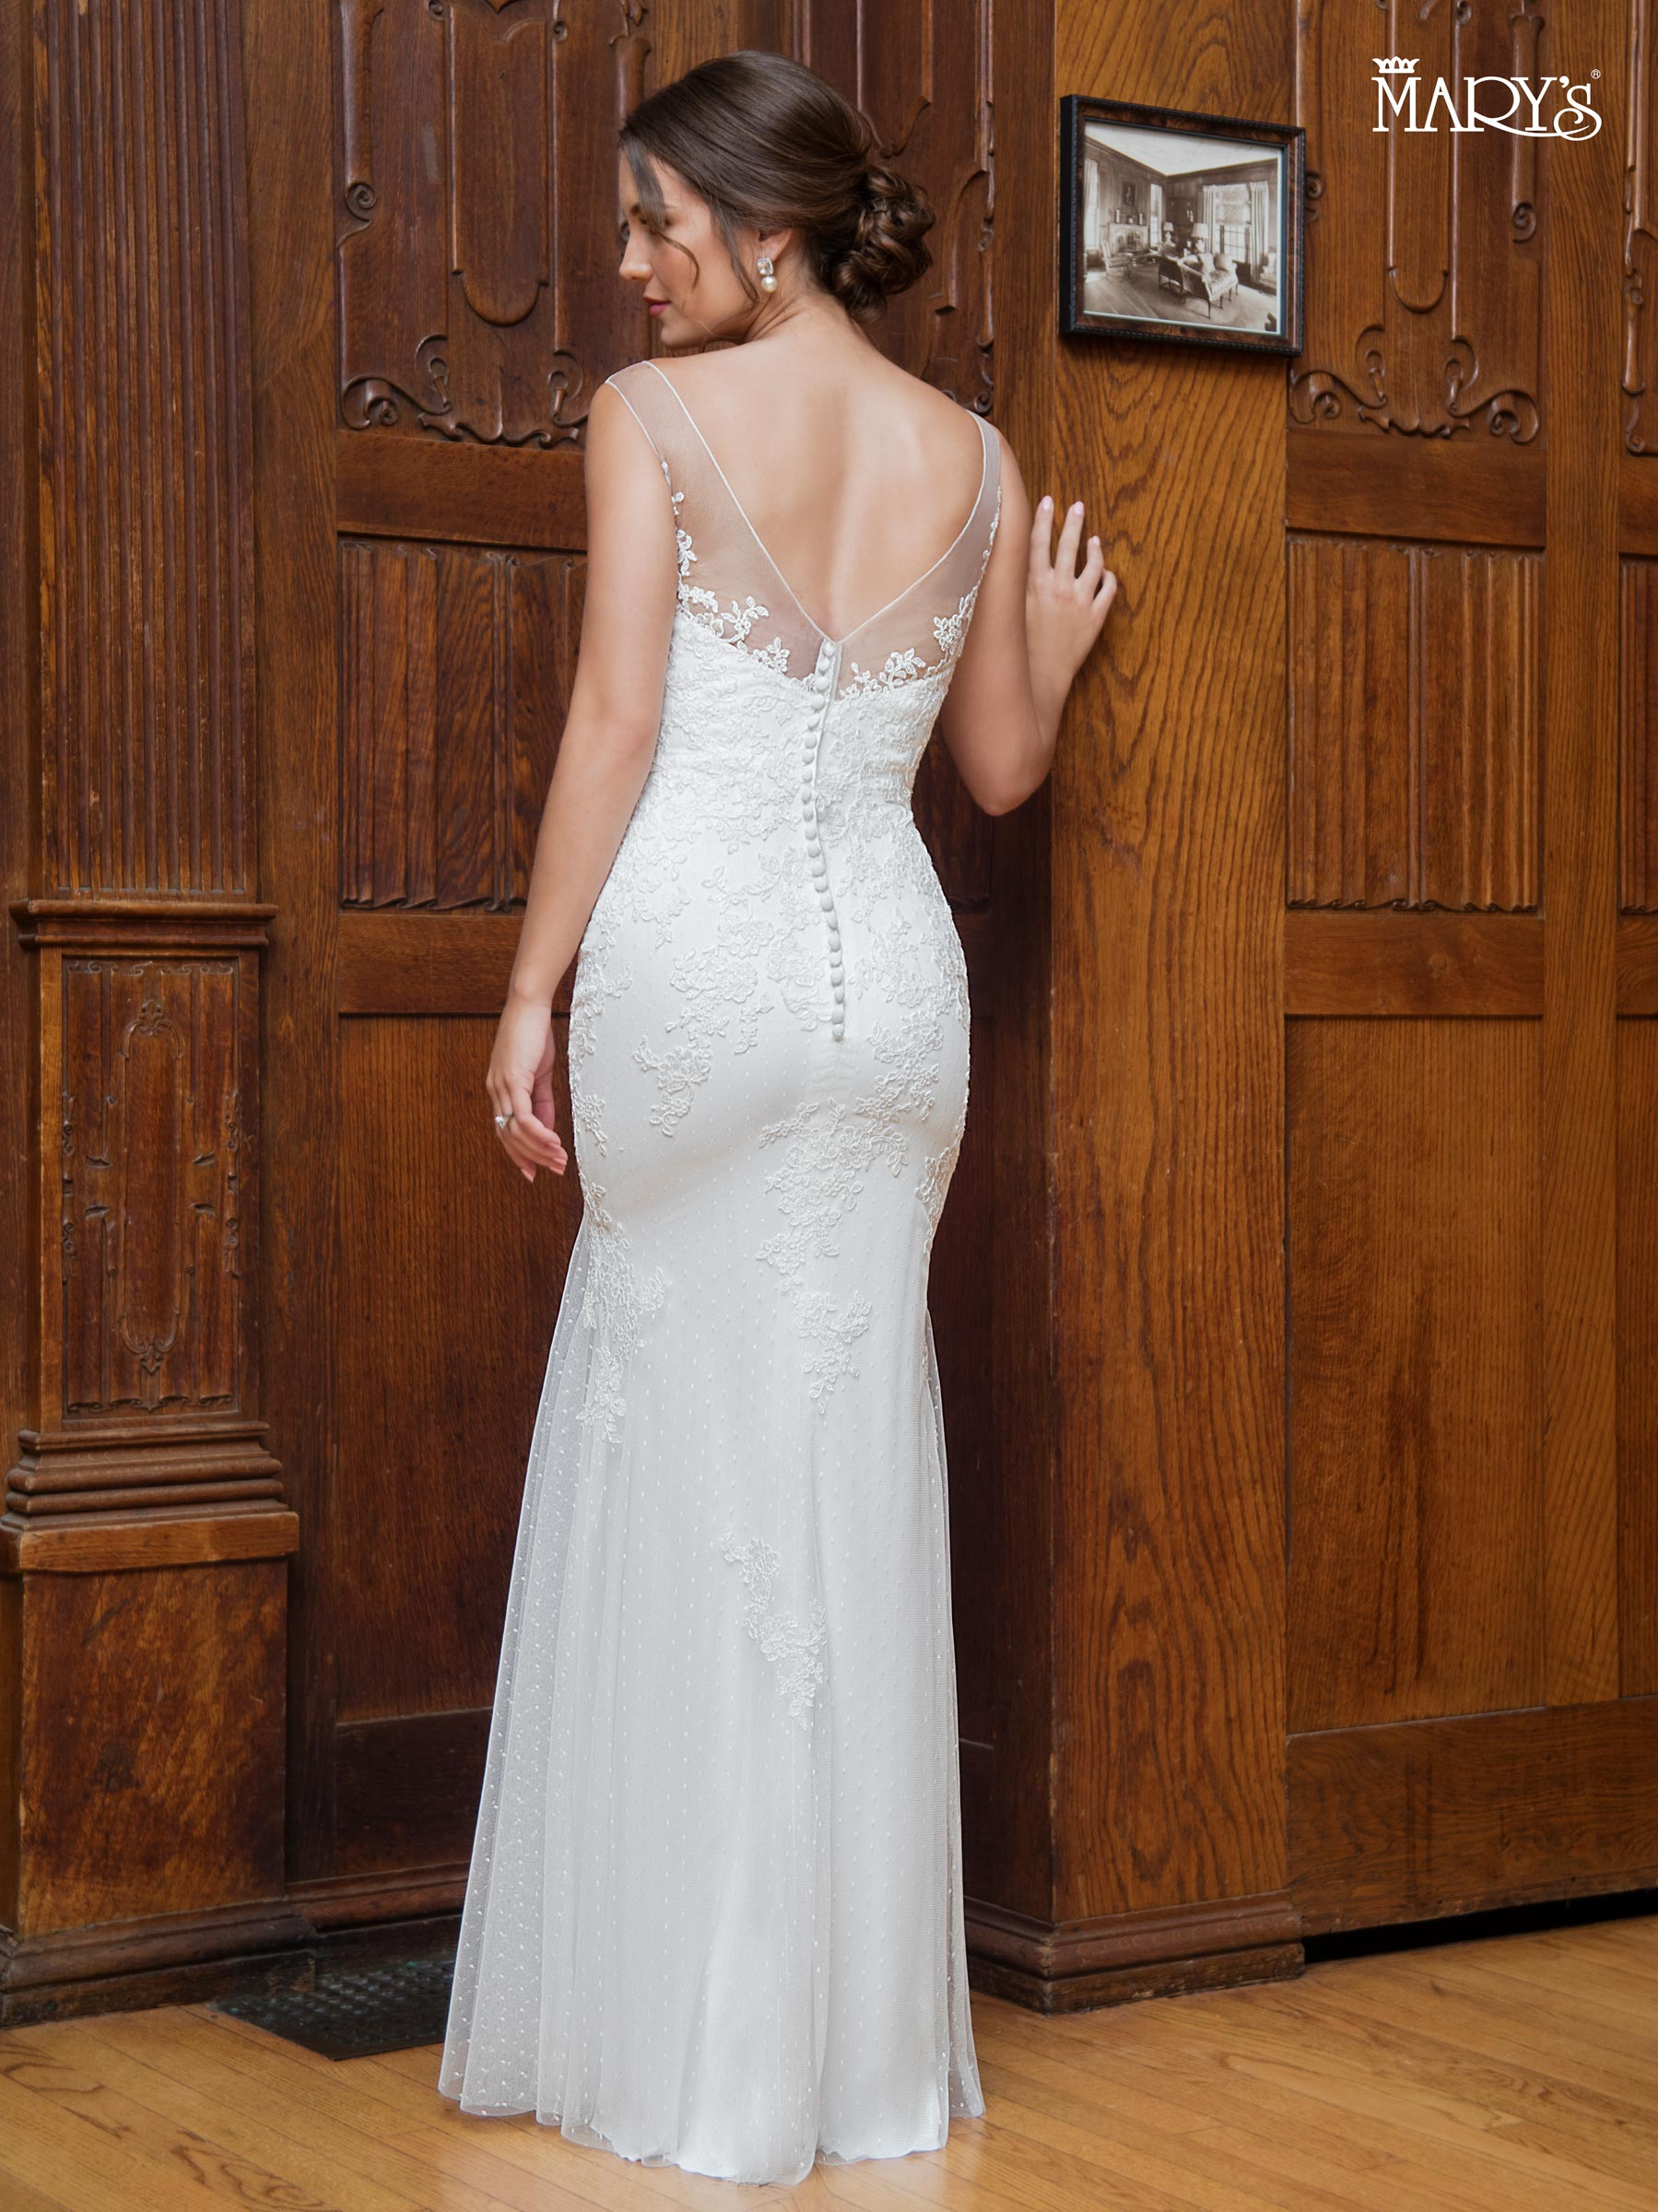 Bridal Wedding Dresses Style Mb1004 In Ivory Or White